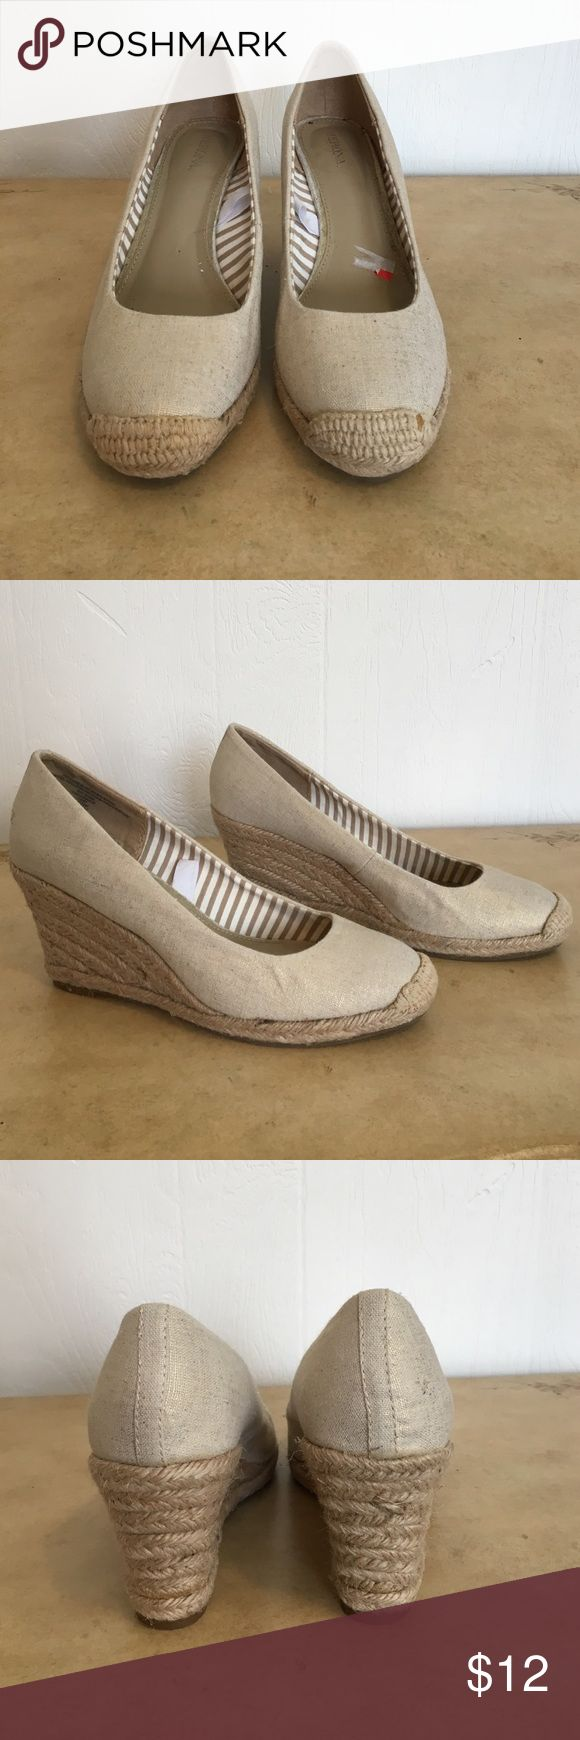 Merona Metallic Nude Espadrilles Wedges Merona Metallic Nude Espadrilles Wedges Size 7.  Details include rubber sole, rope details on wedge, and metallic thread for a slight sheen!  These are great wedges for the summer! Preppy and cute! Merona Shoes Espadrilles